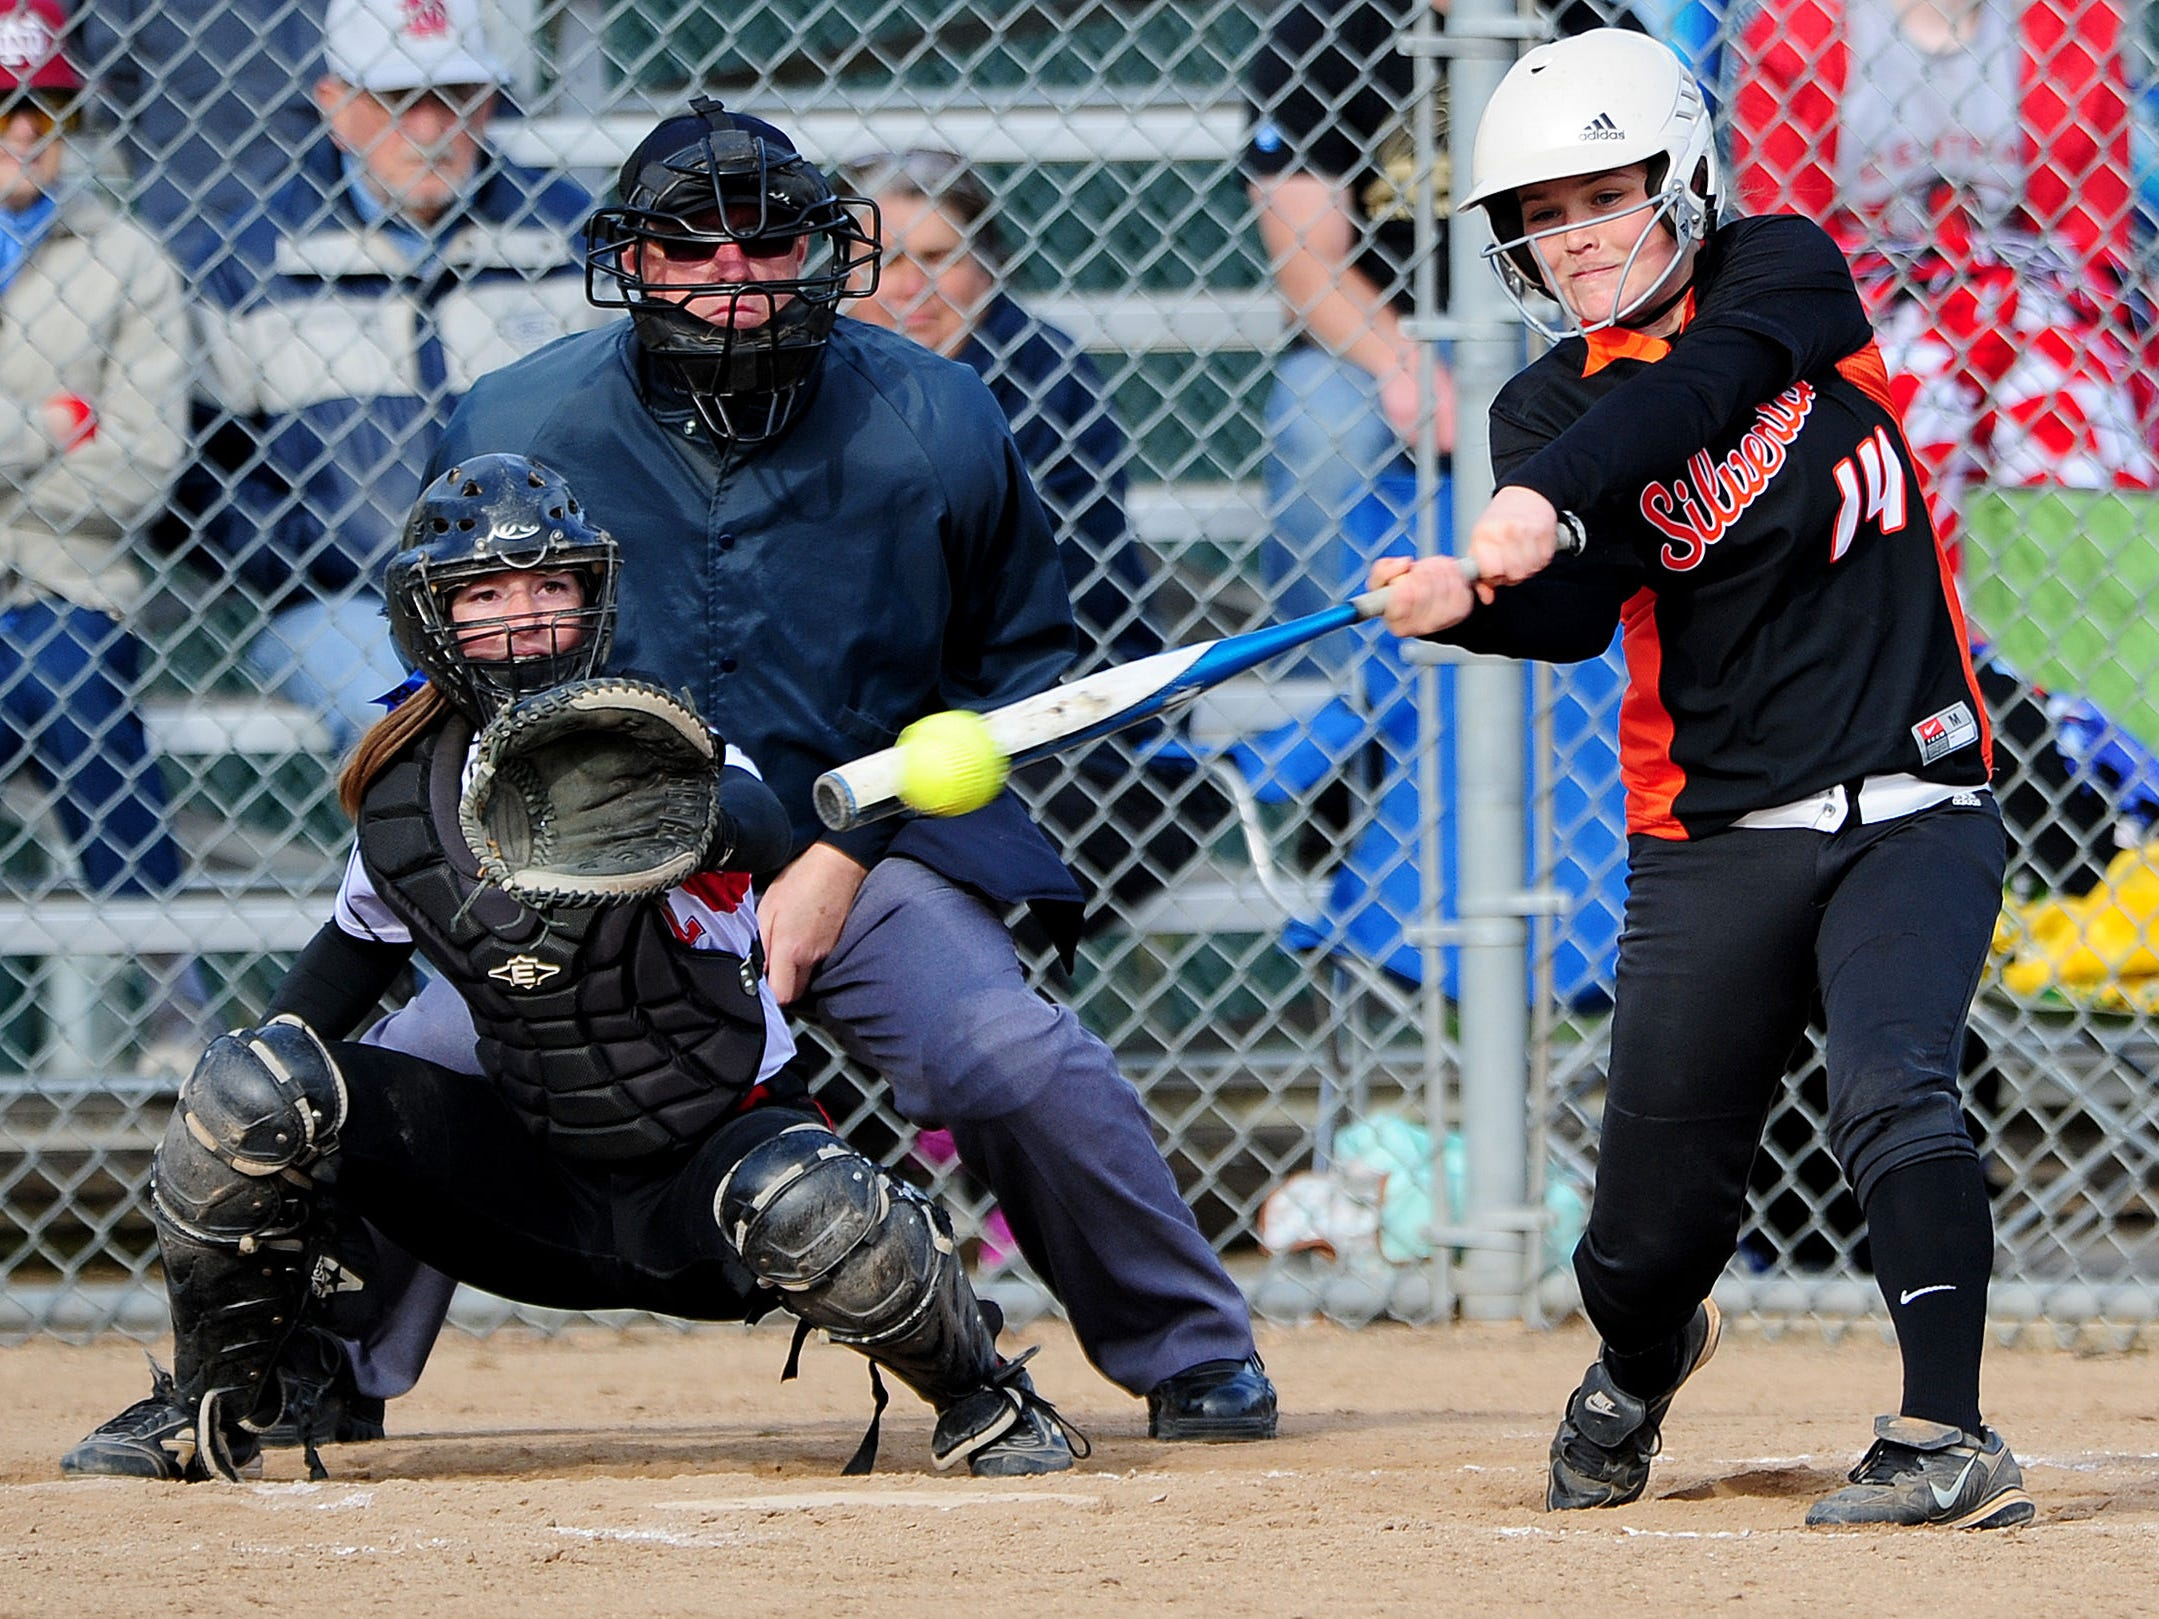 Silverton batter Megan Mannion knocks in an RBI in the seventh inning against Central during the first game of a doubleheader, on Friday, April 24, 2015, in Independence.